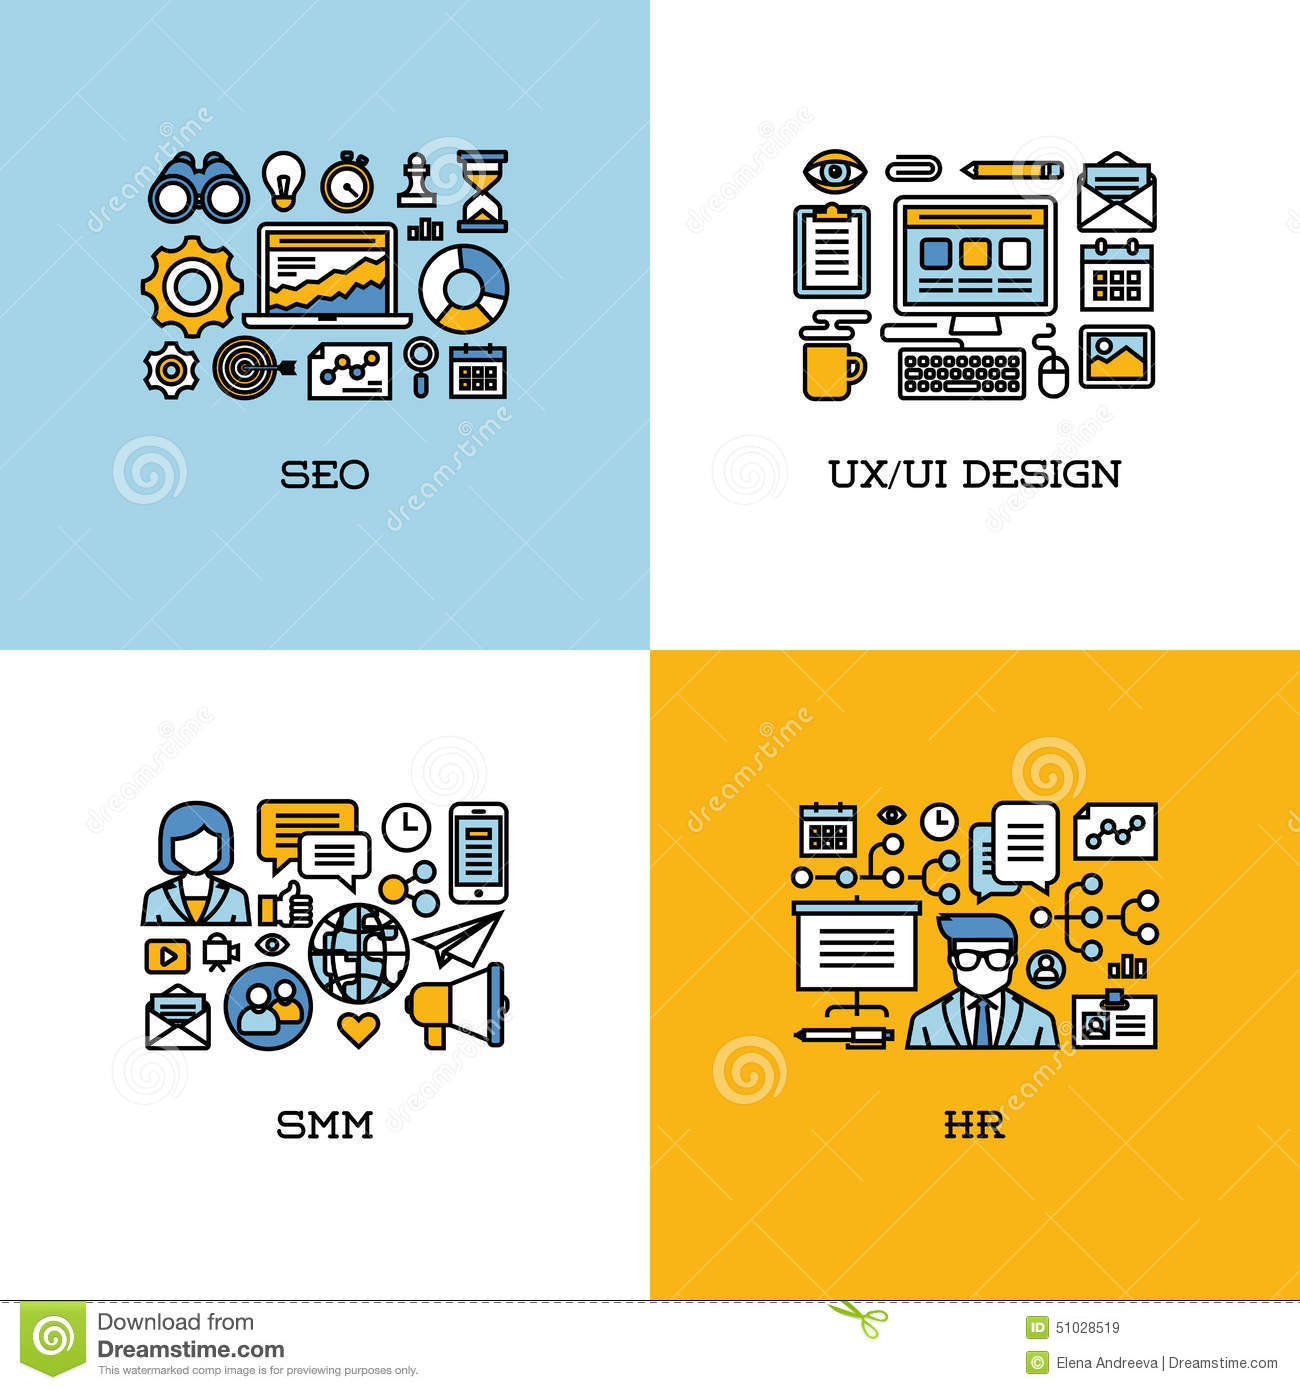 Flat Line Icons Set Of SEO, UI And UX Design, SMM, HR